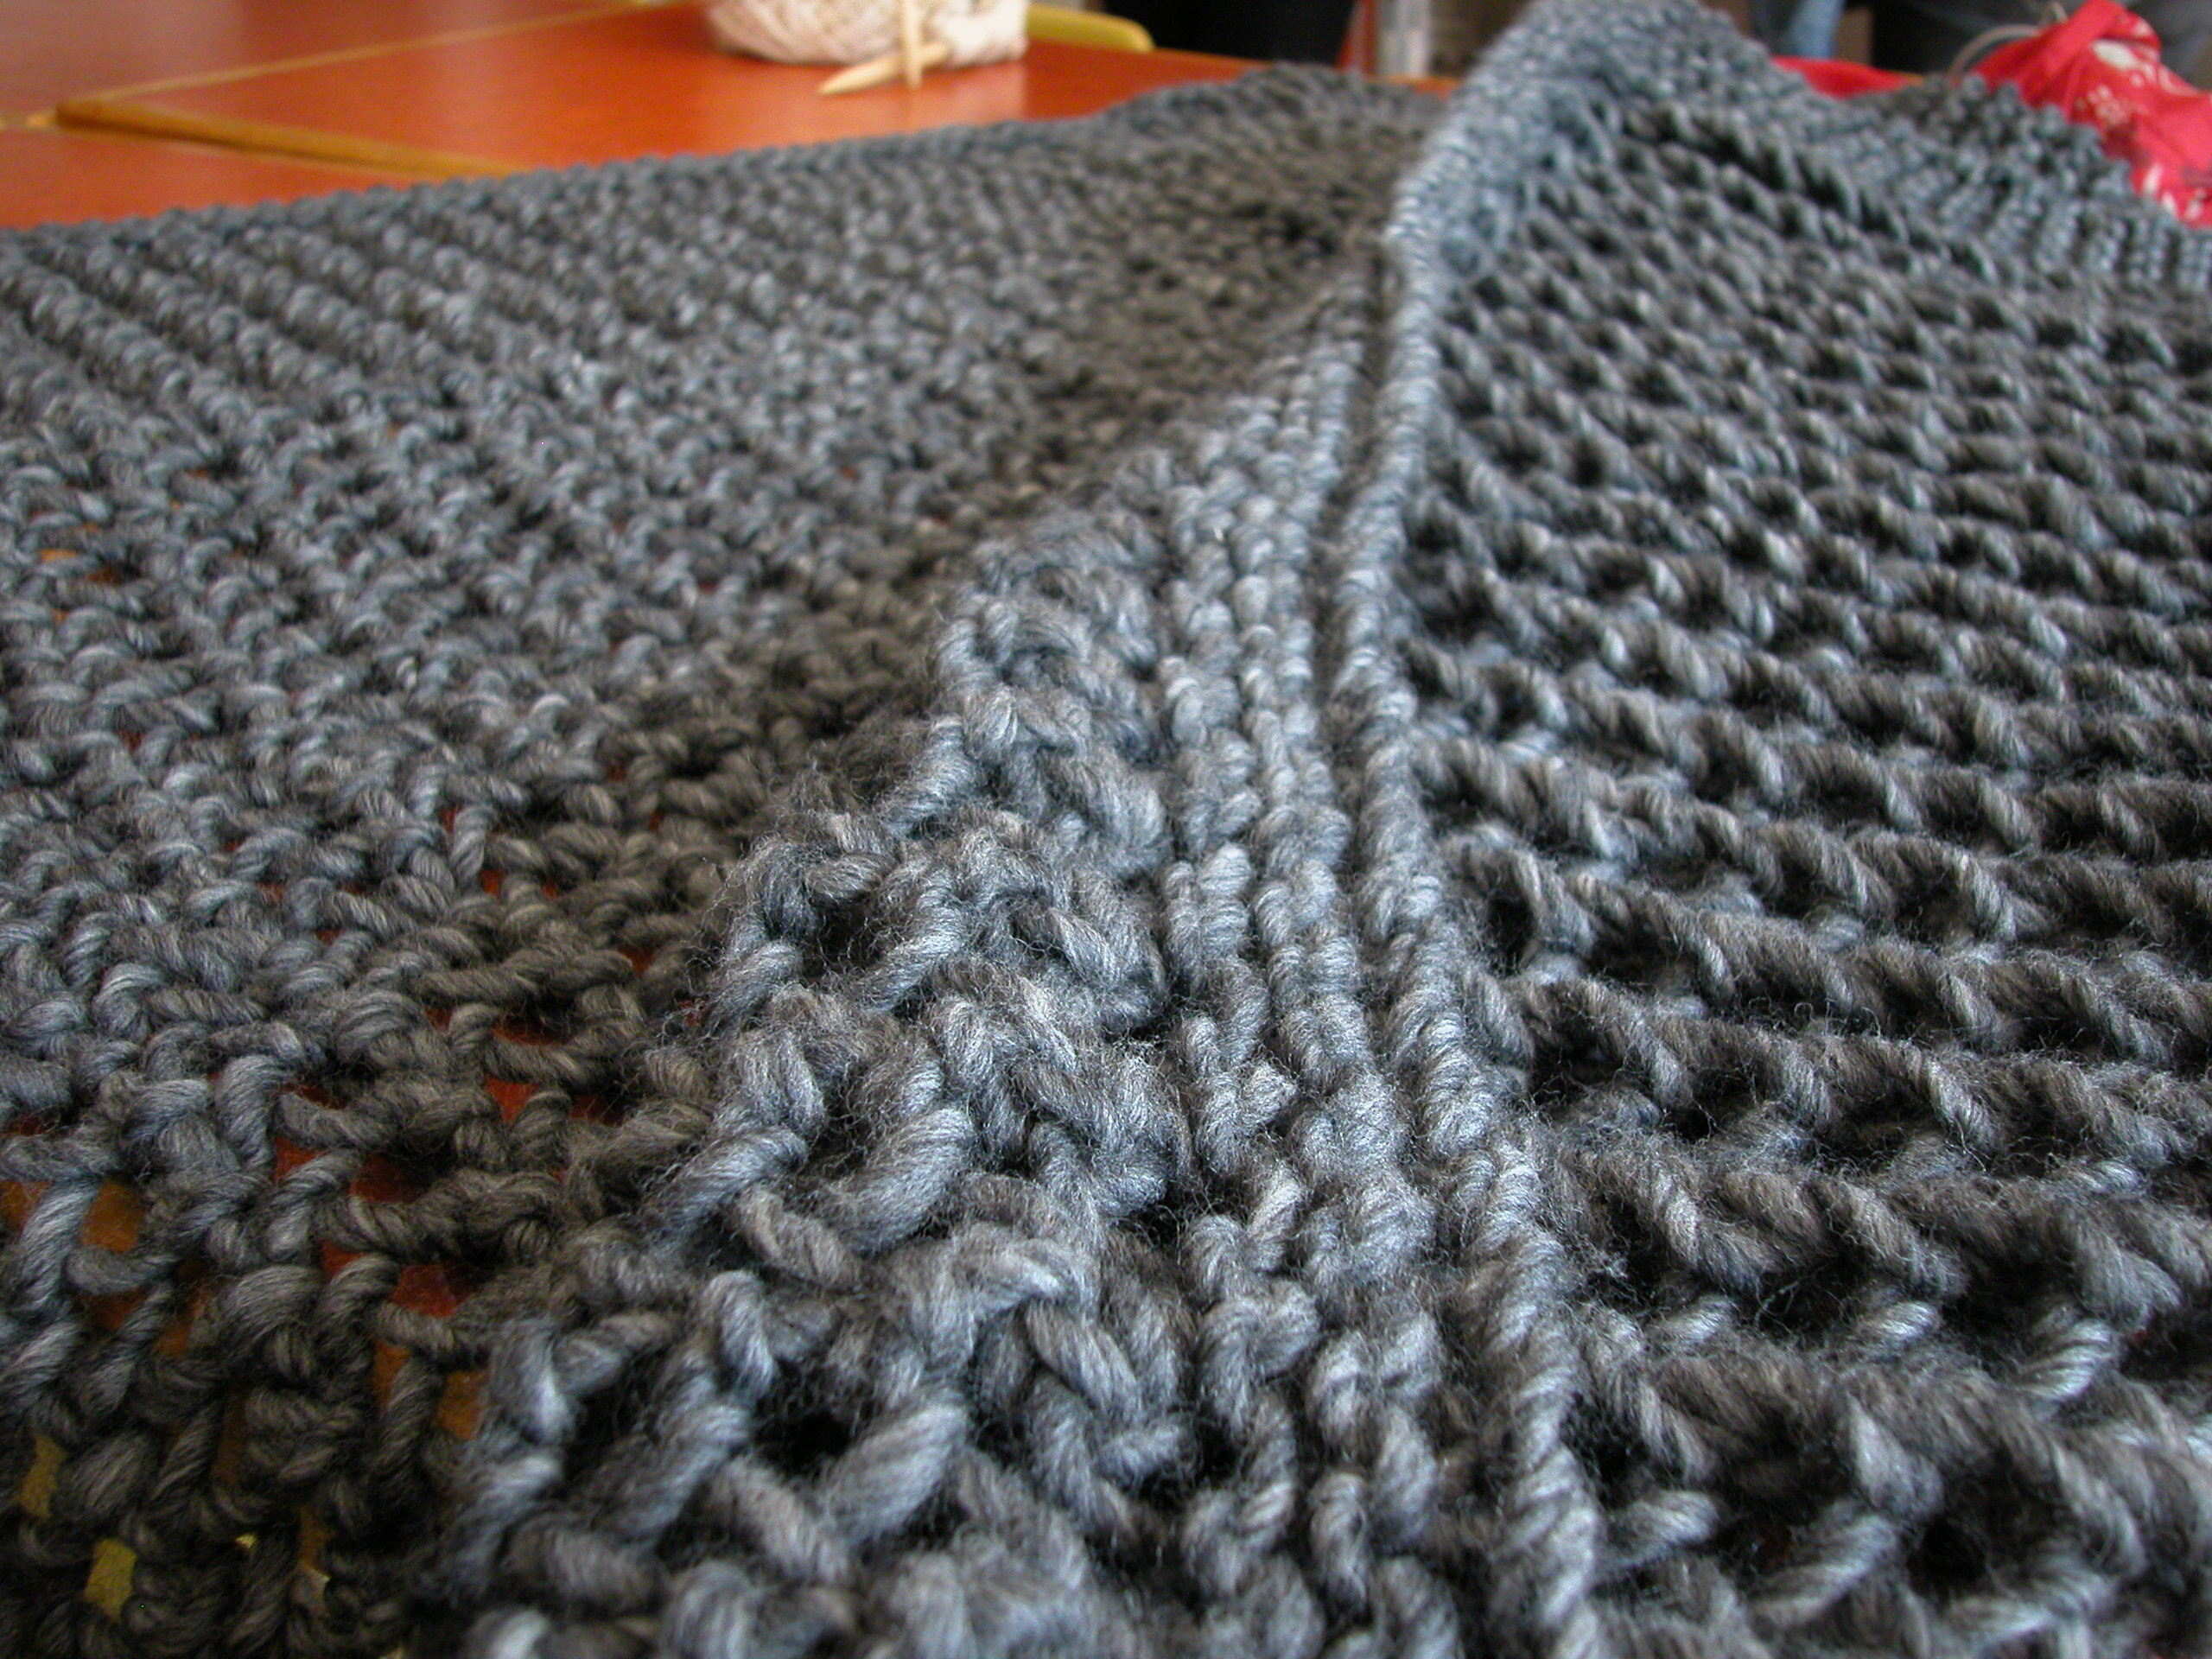 What You Should Know Before Proceeding Crochet Chunky Yarn Patterns Yarn Threadsnstitches